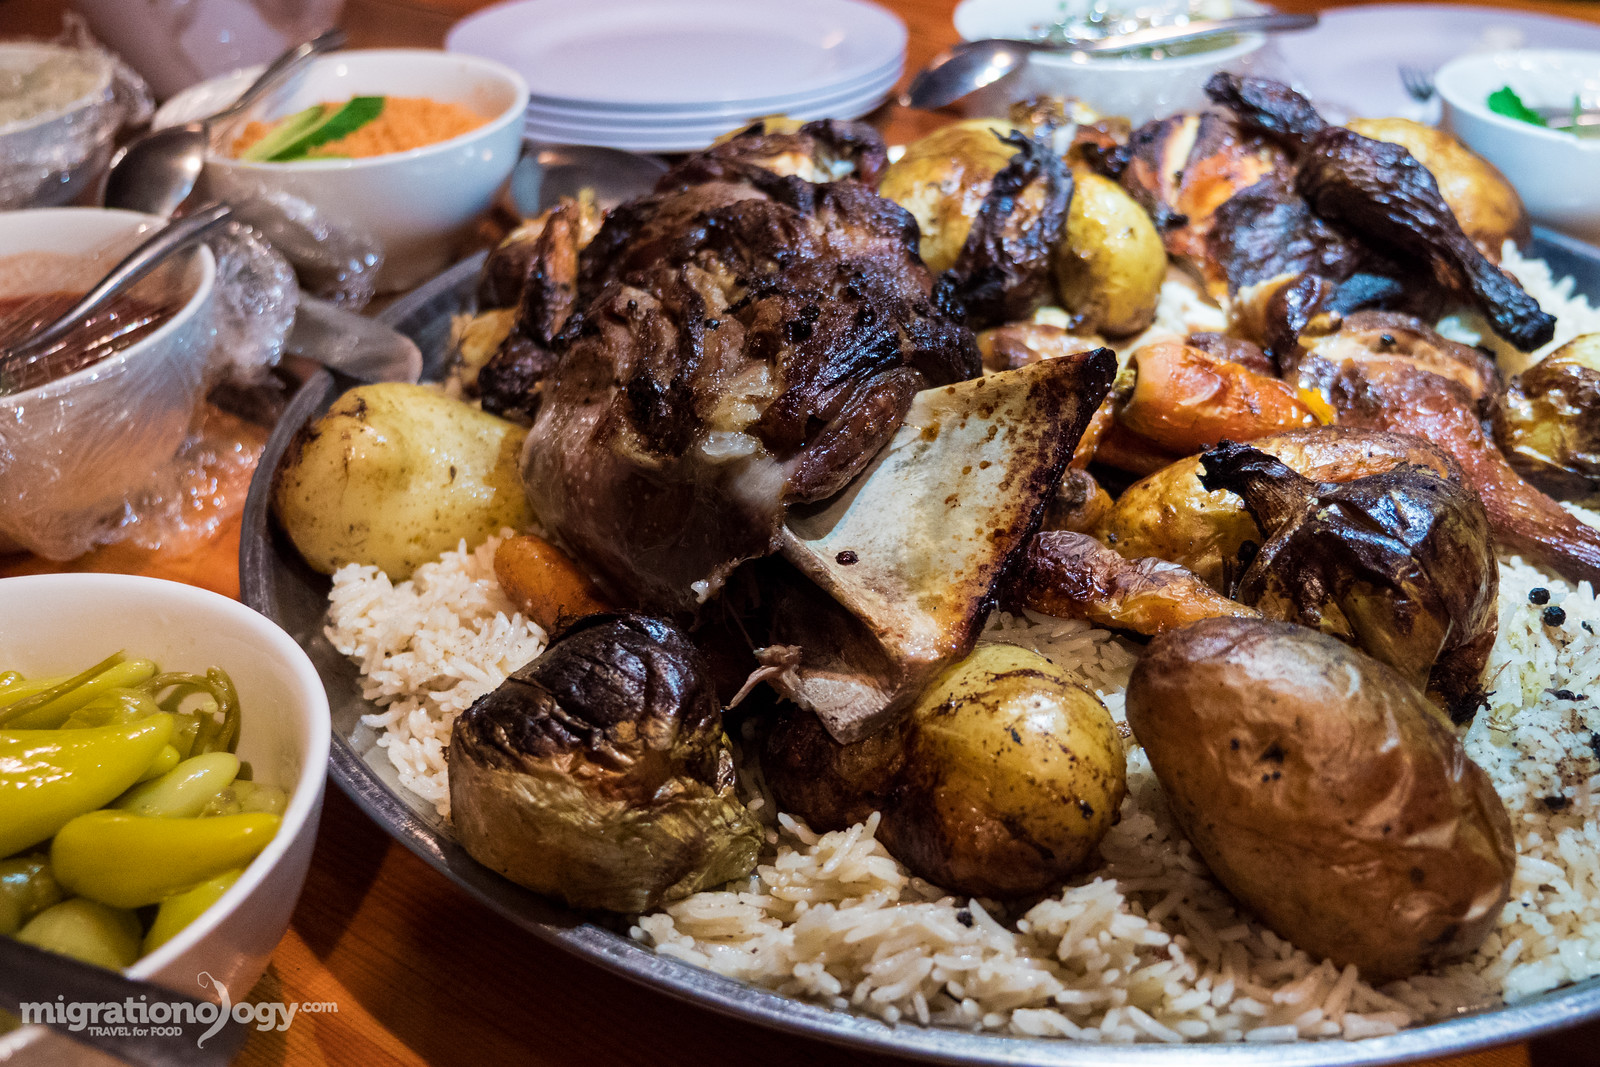 Bedouin food